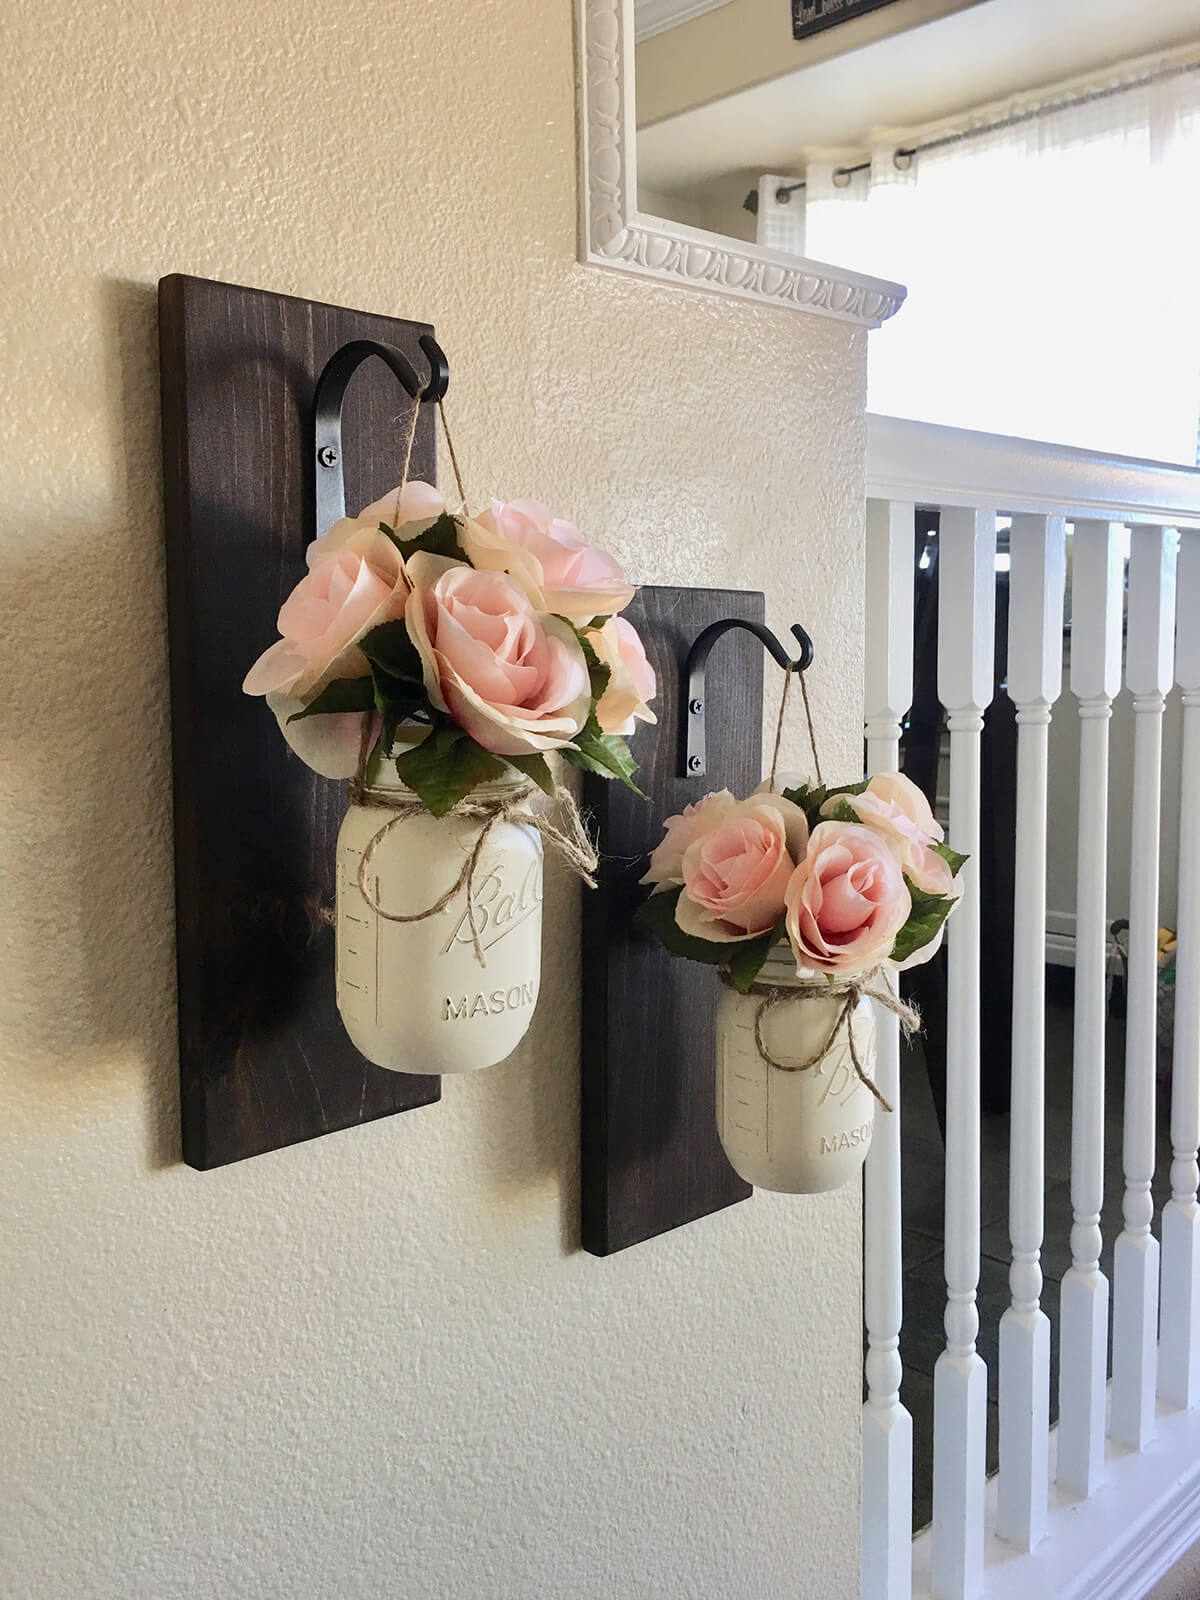 A Cute Way to Display a Rose